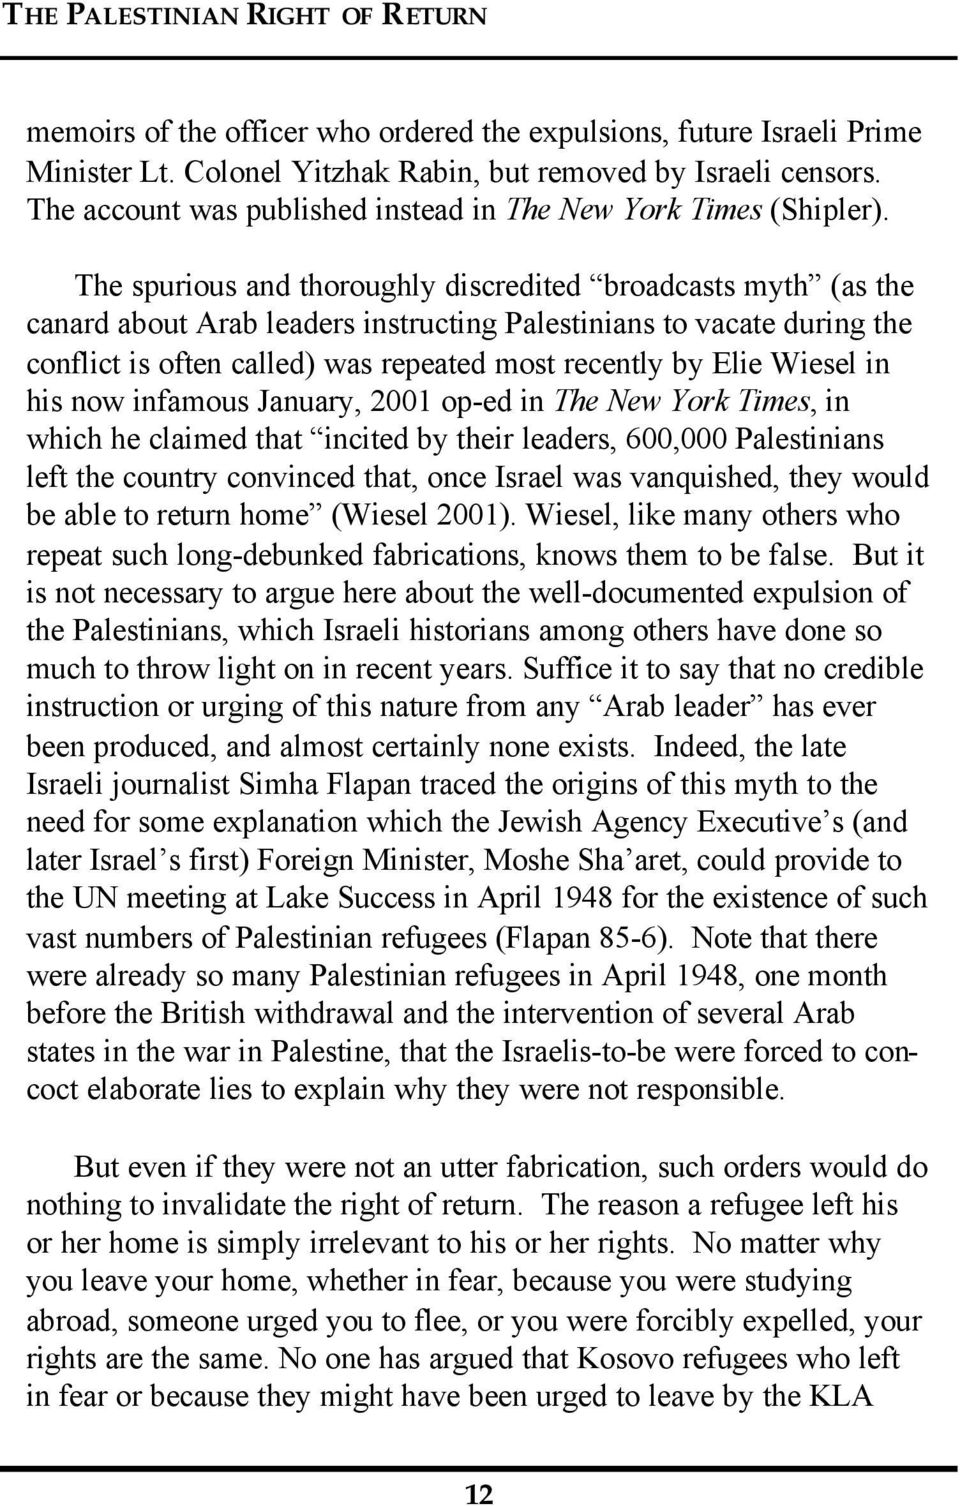 The spurious and thoroughly discredited broadcasts myth (as the canard about Arab leaders instructing Palestinians to vacate during the conflict is often called) was repeated most recently by Elie